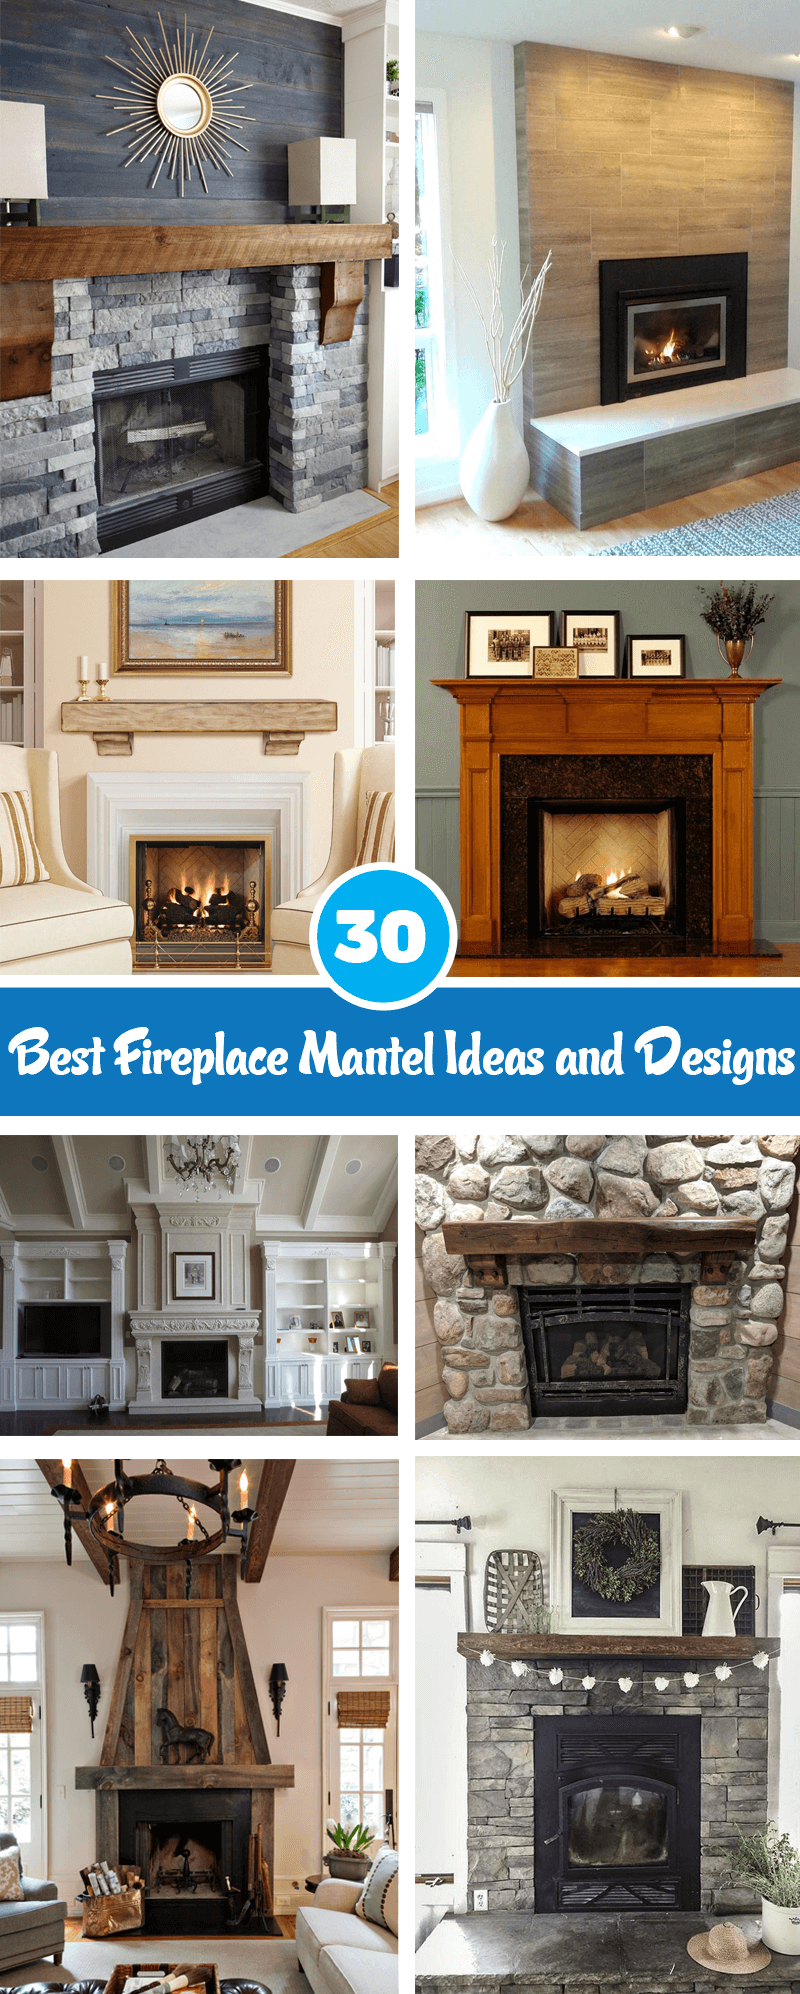 best fireplace mantel ideas and designs